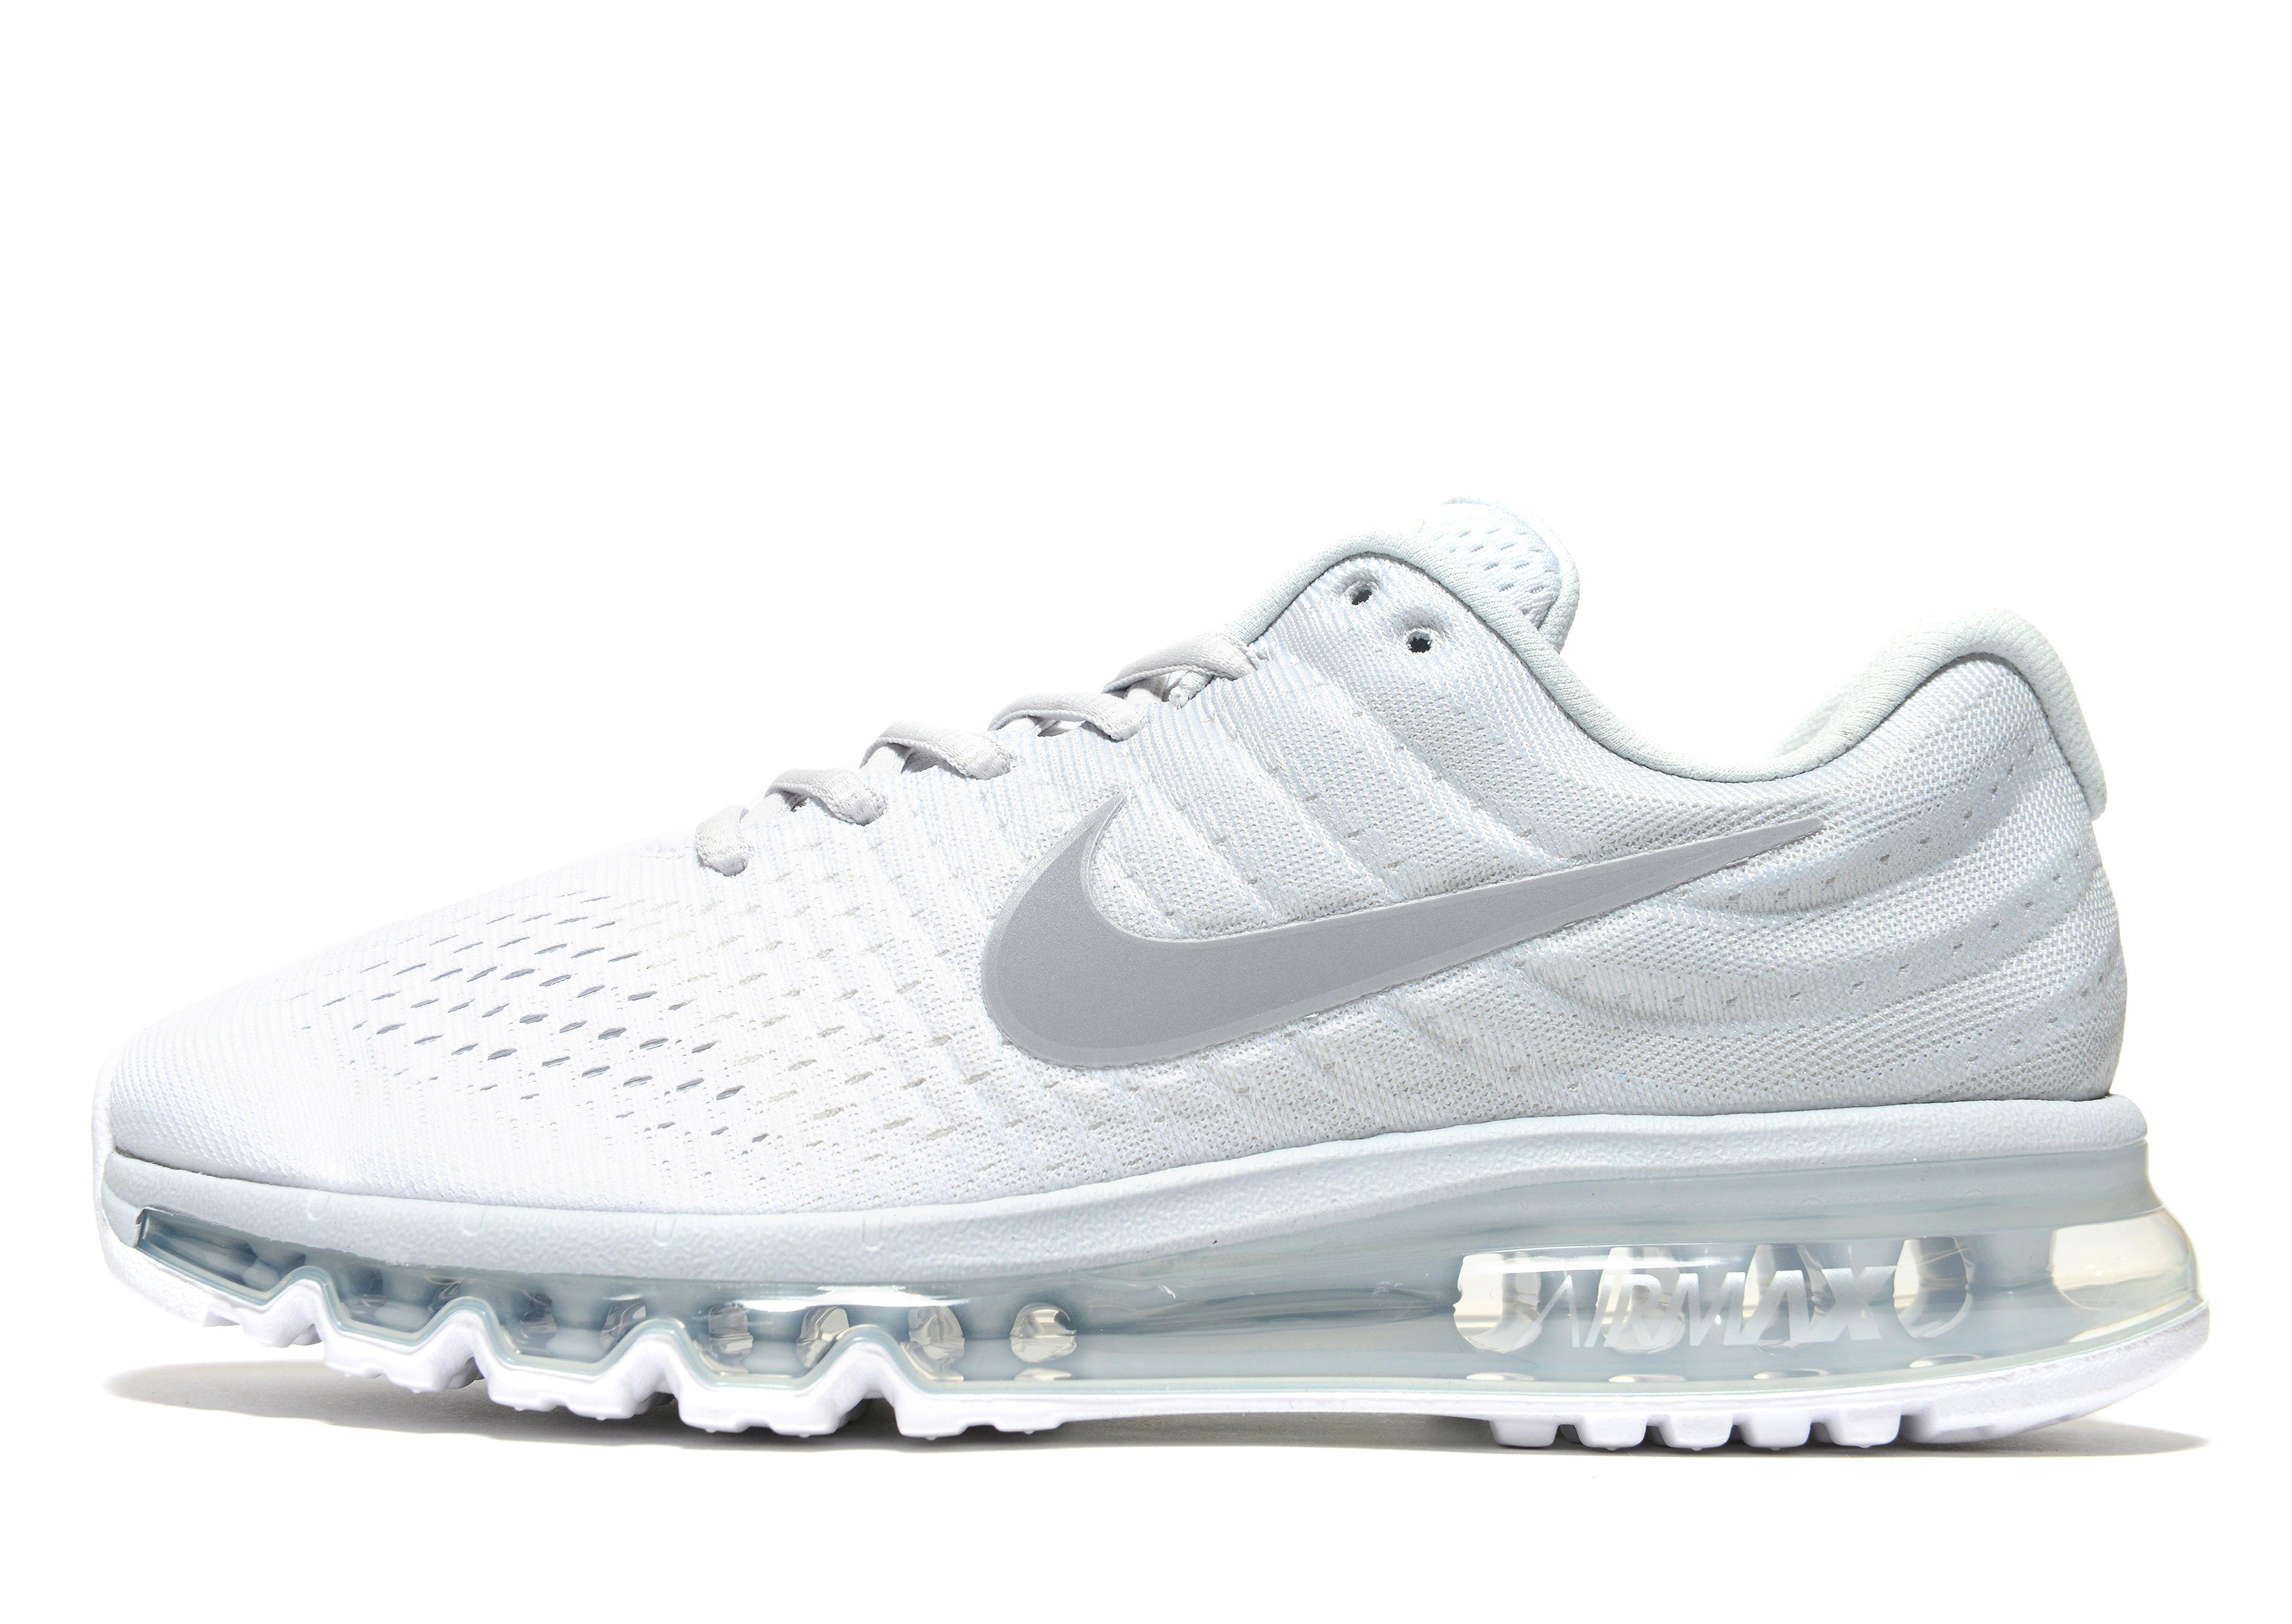 00bdf9a8ce Gallery. Previously sold at: JD Sports · Women's Nike Air Max